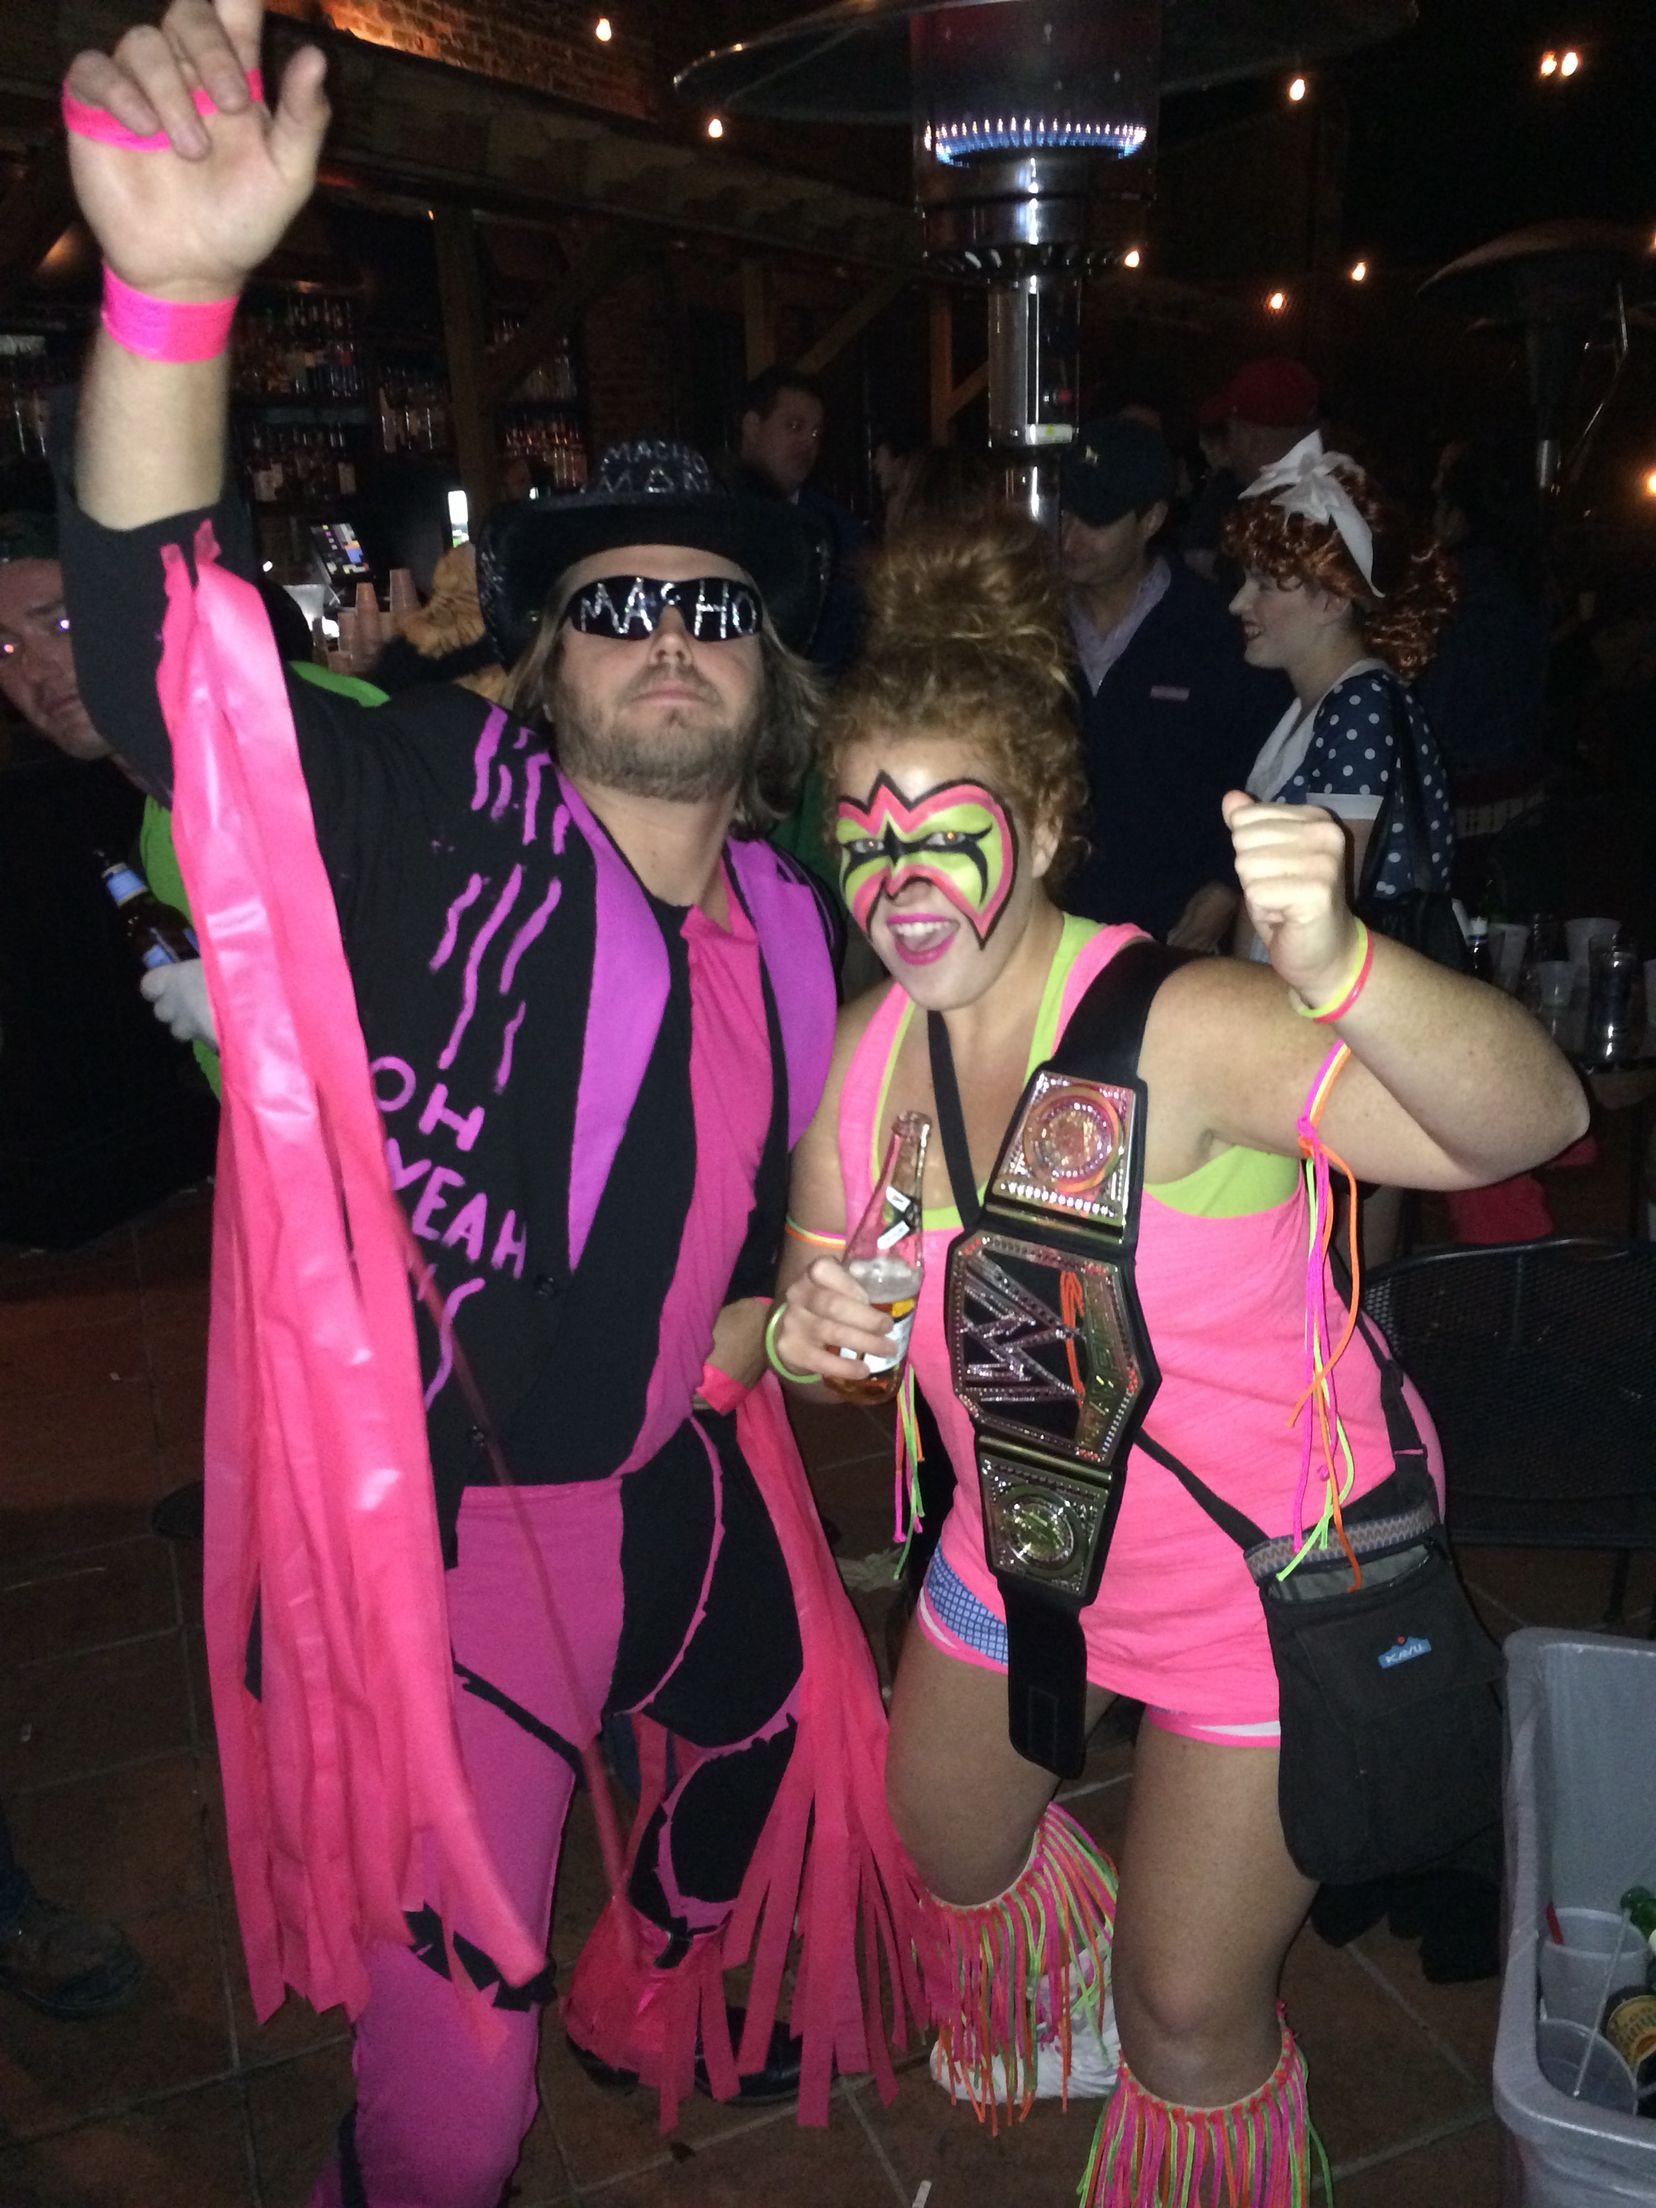 macho man and the ultimate warrior. best halloween costumes ever